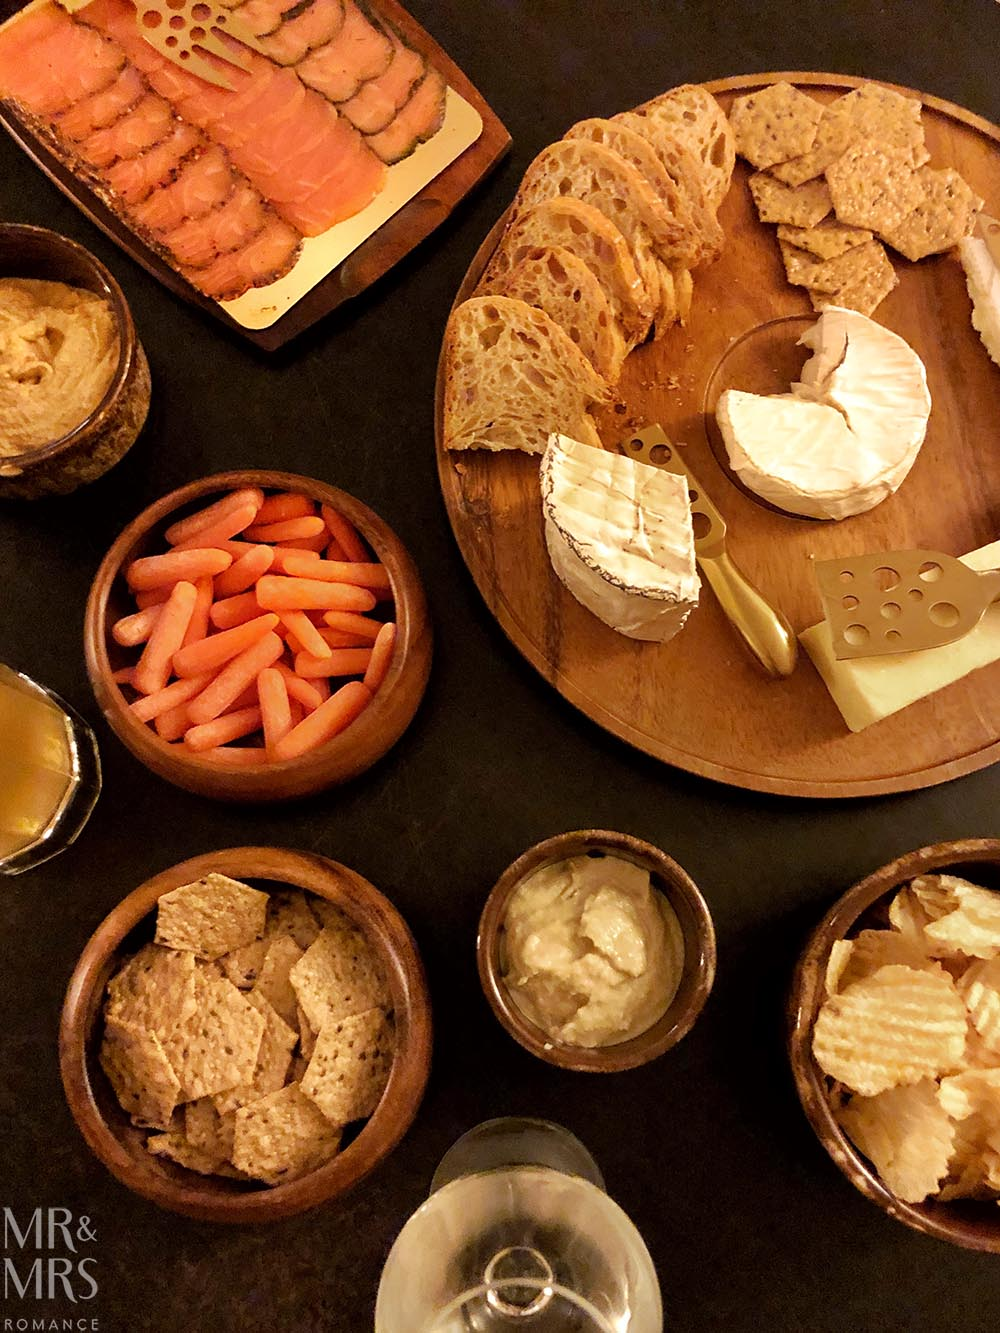 Cheese board, San Diego California